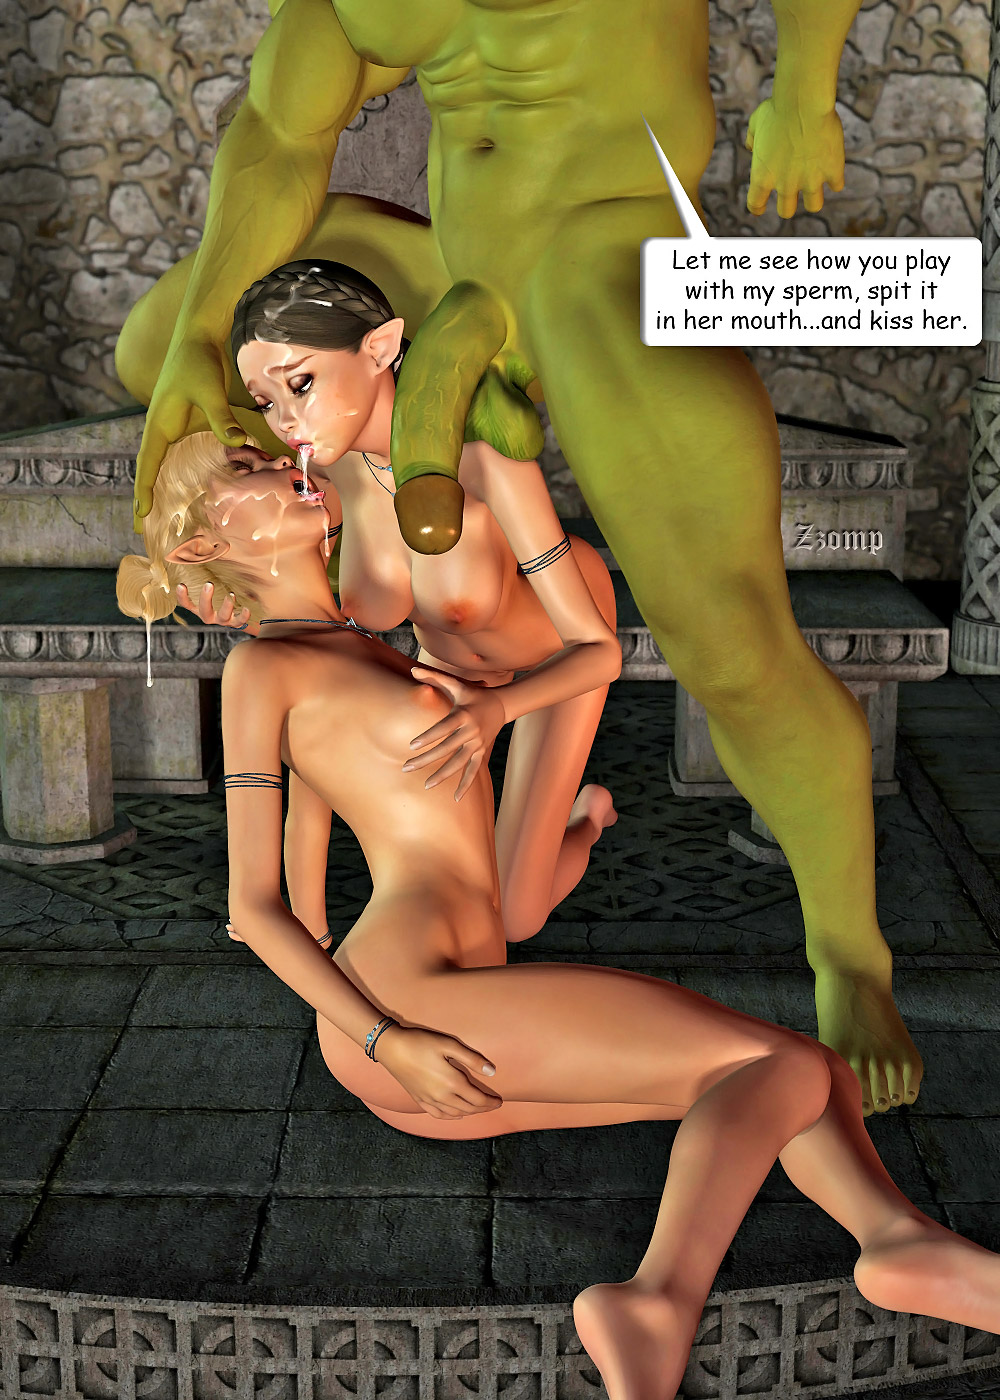 Elf fuck orc image stories erotica thumbs